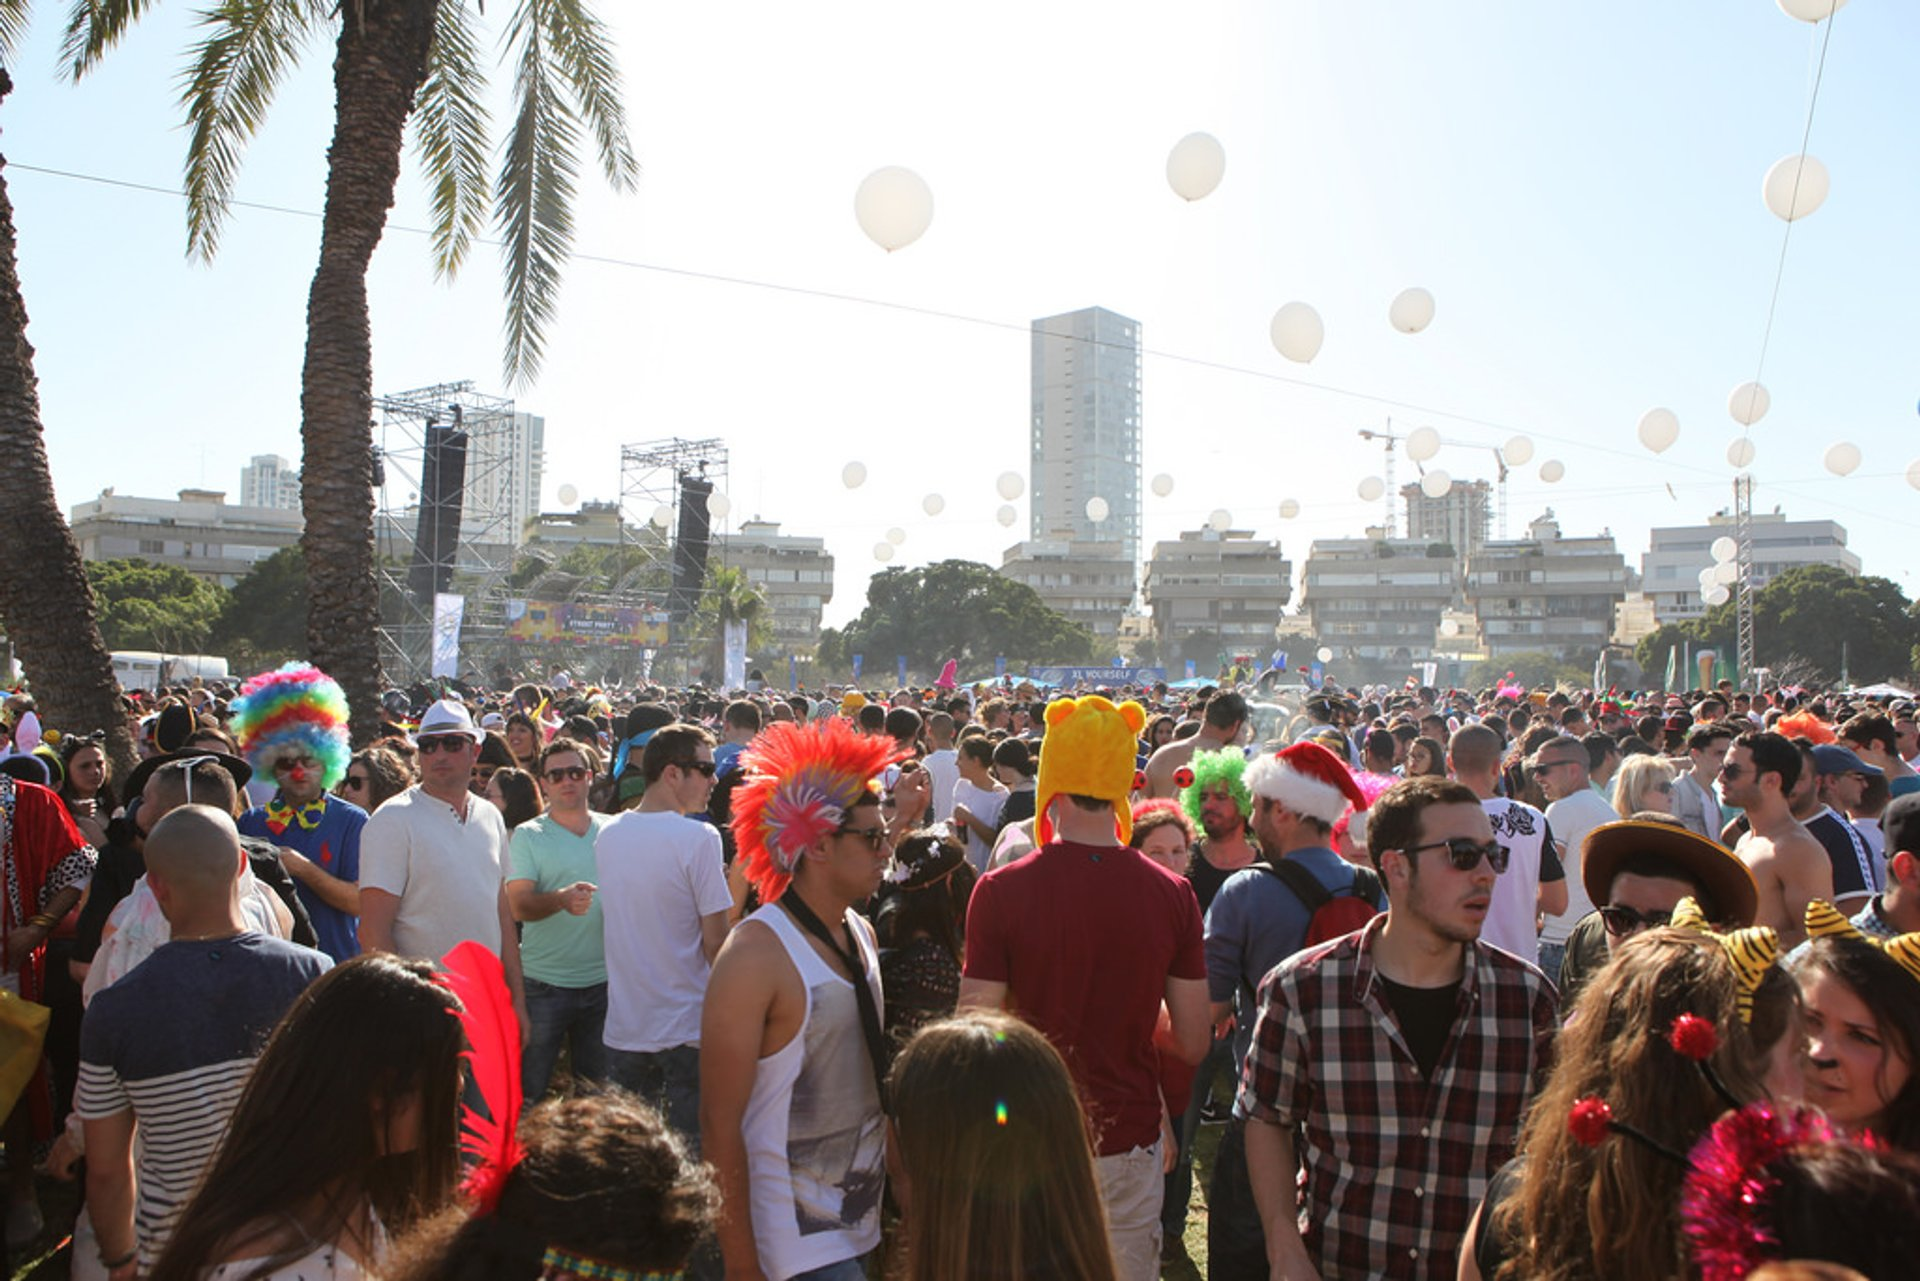 Purim Street Party in Israel 2020 - Best Time